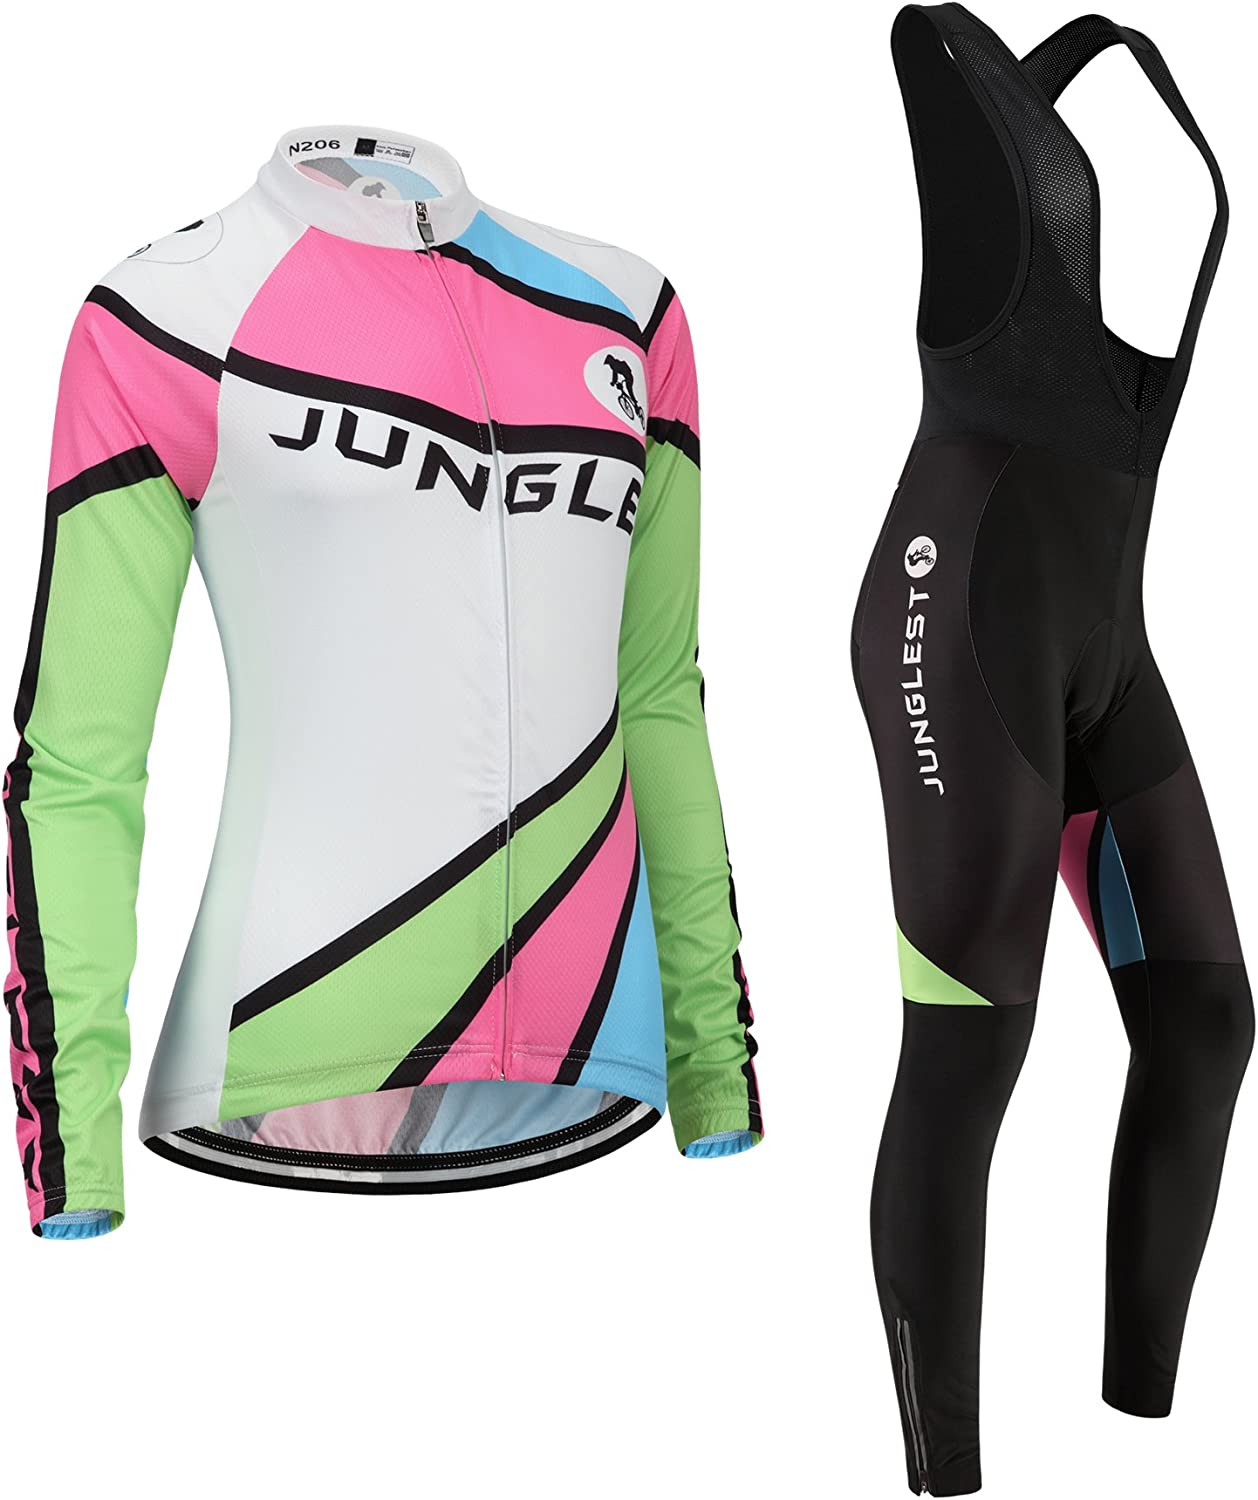 Cycling jersey Set, Maillot de Cyclisme Women Femme Long sleeve Manches Longues(S5XL,option bib Cuissard,3D pad Coussin) N206